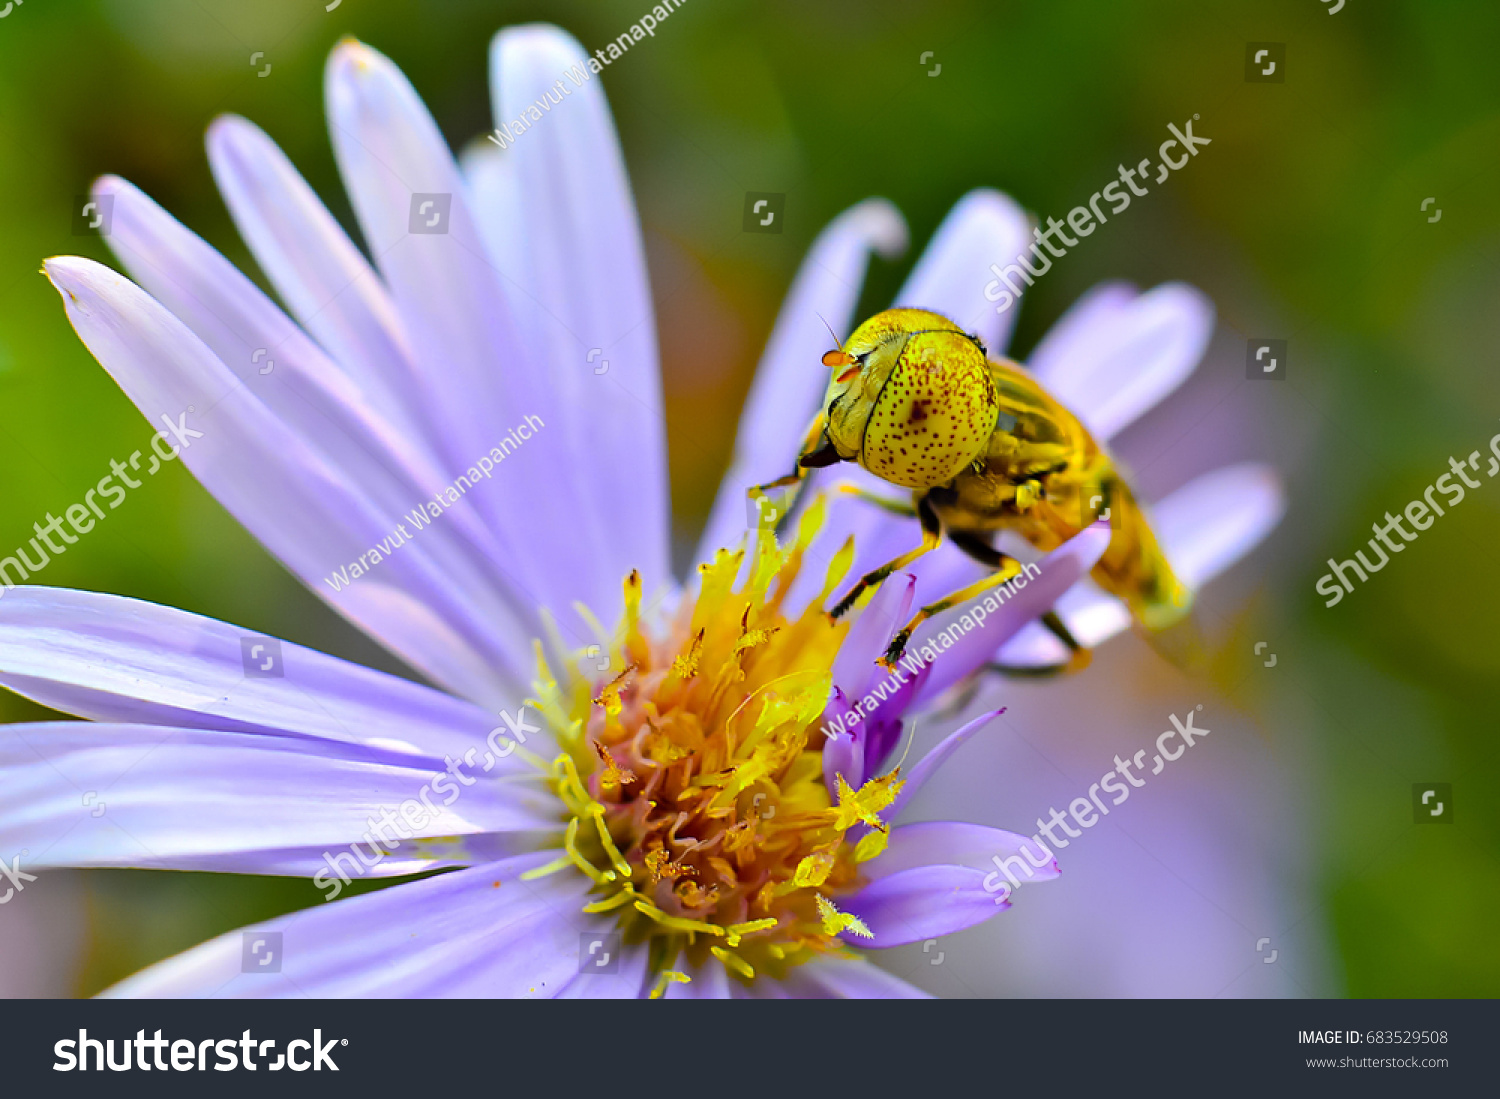 Close Up Of Bumble Bee Collecting Nectar On A Daisy Flower Showing